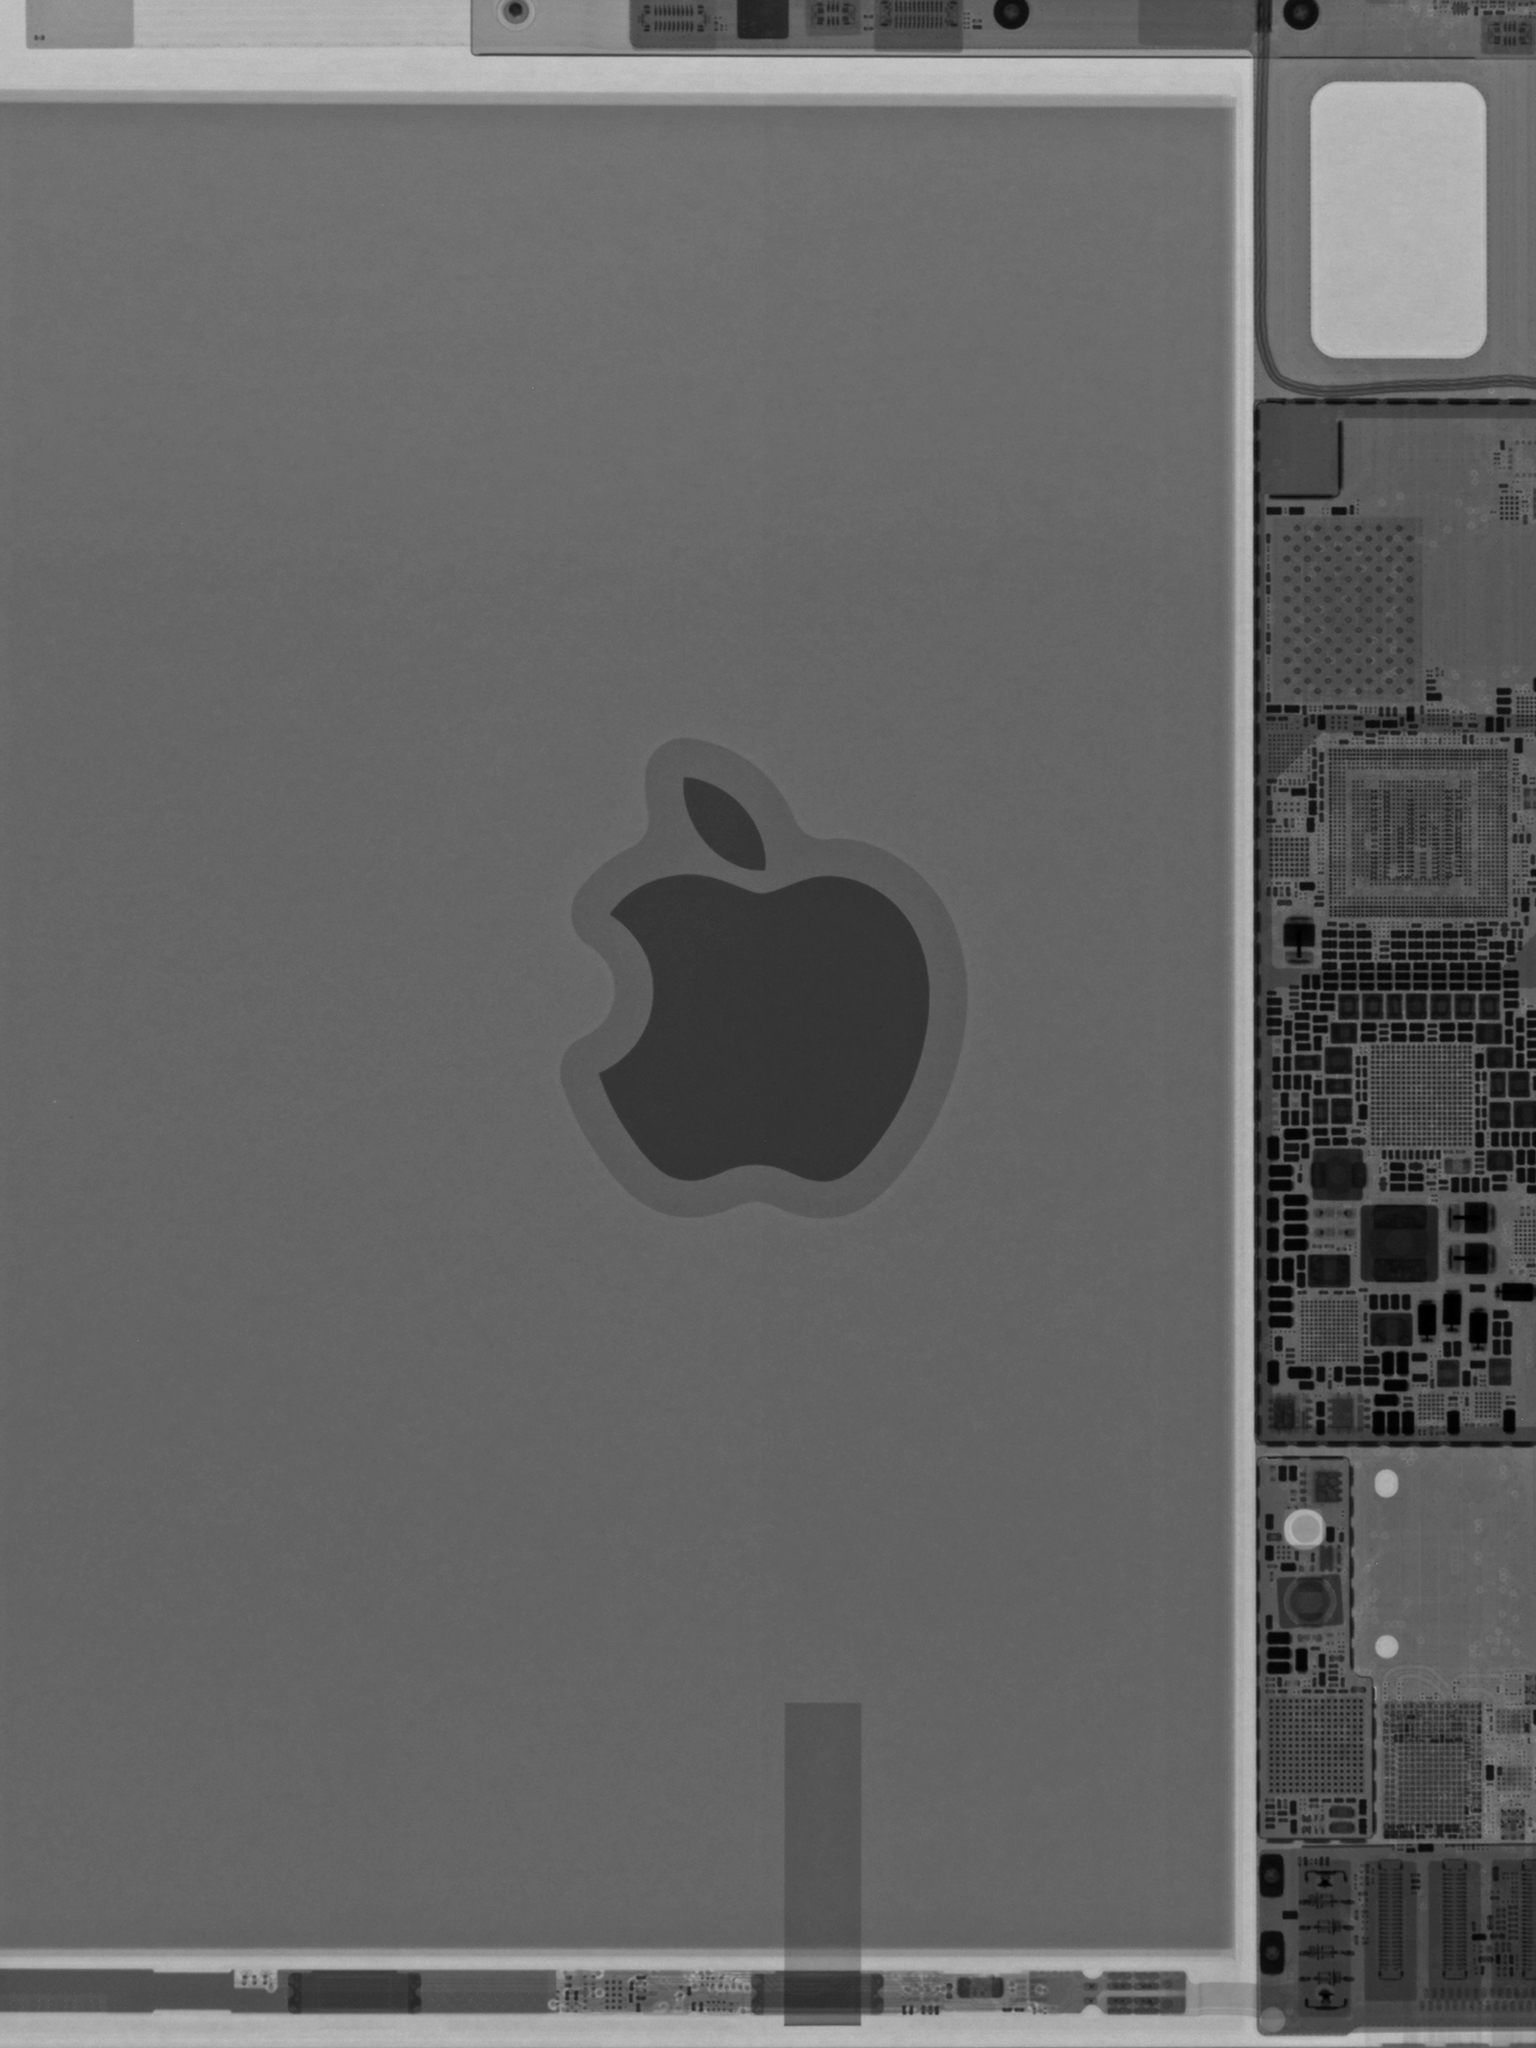 Wallpaper da iFixit com componentes internos do novo iPad mini